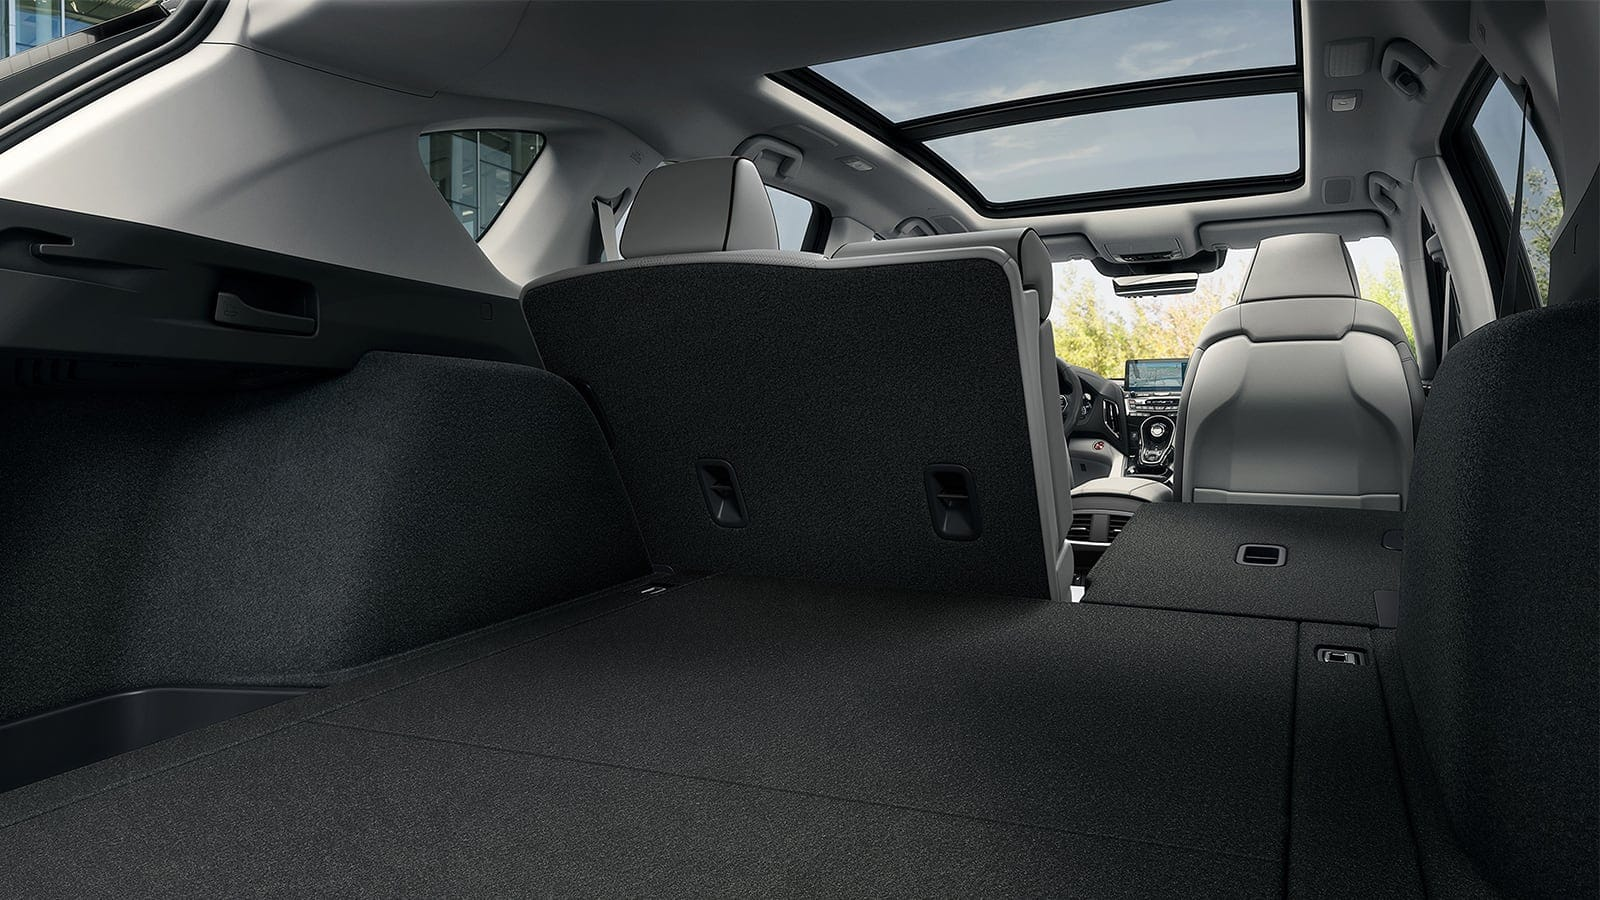 2020 RDX Cabin Space